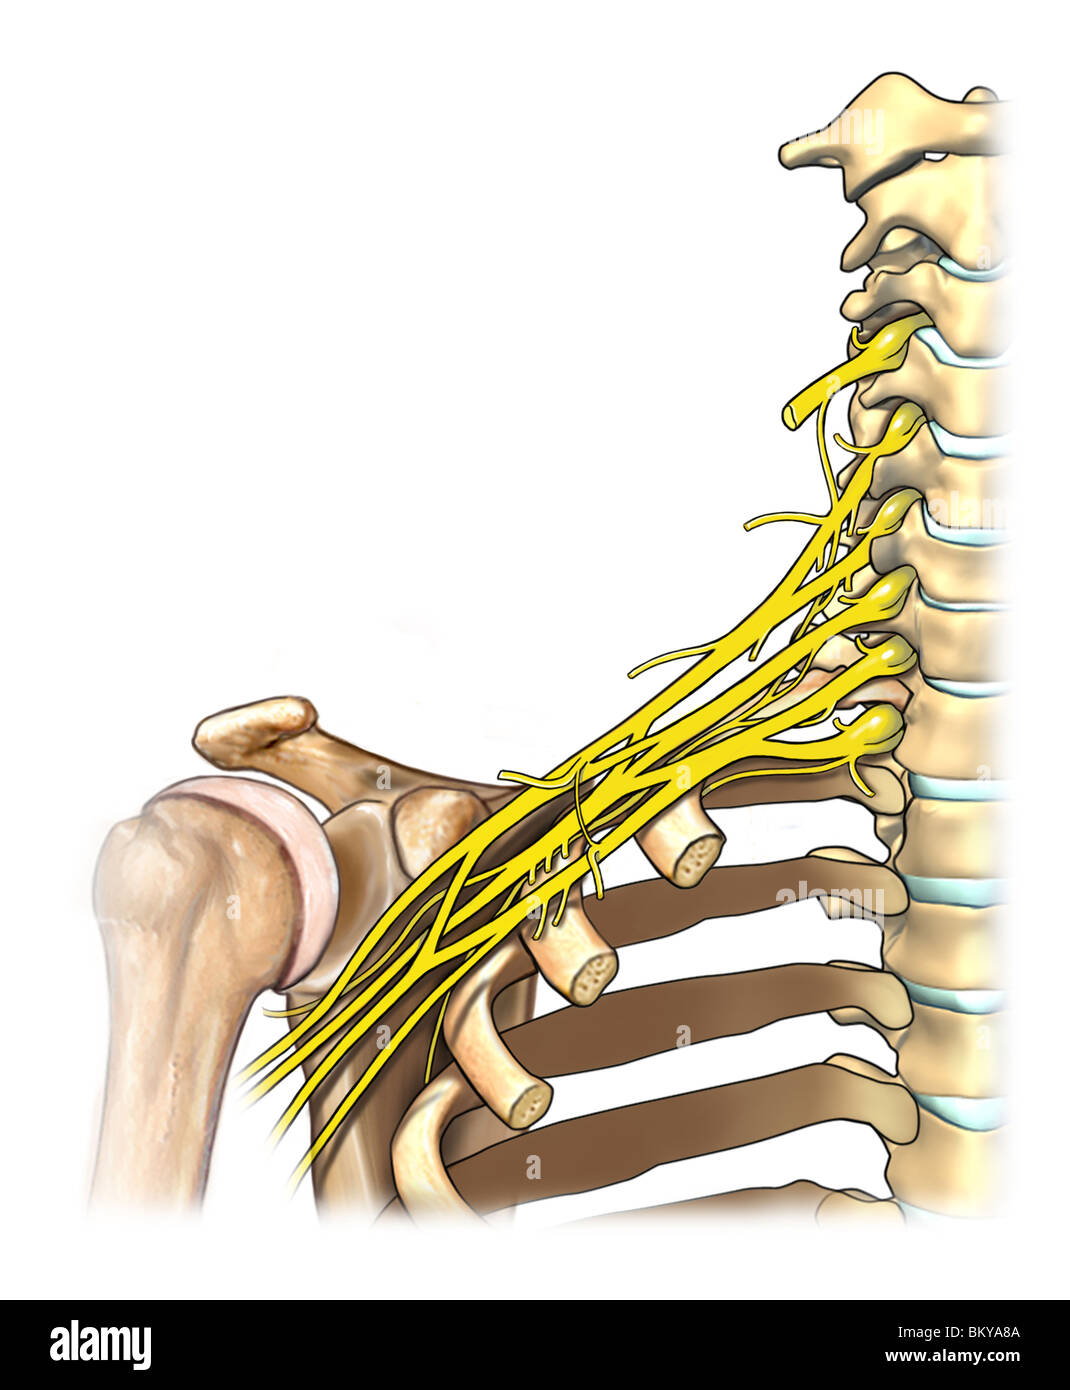 Anatomy of brachial plexus Stock Photo: 29489610 - Alamy